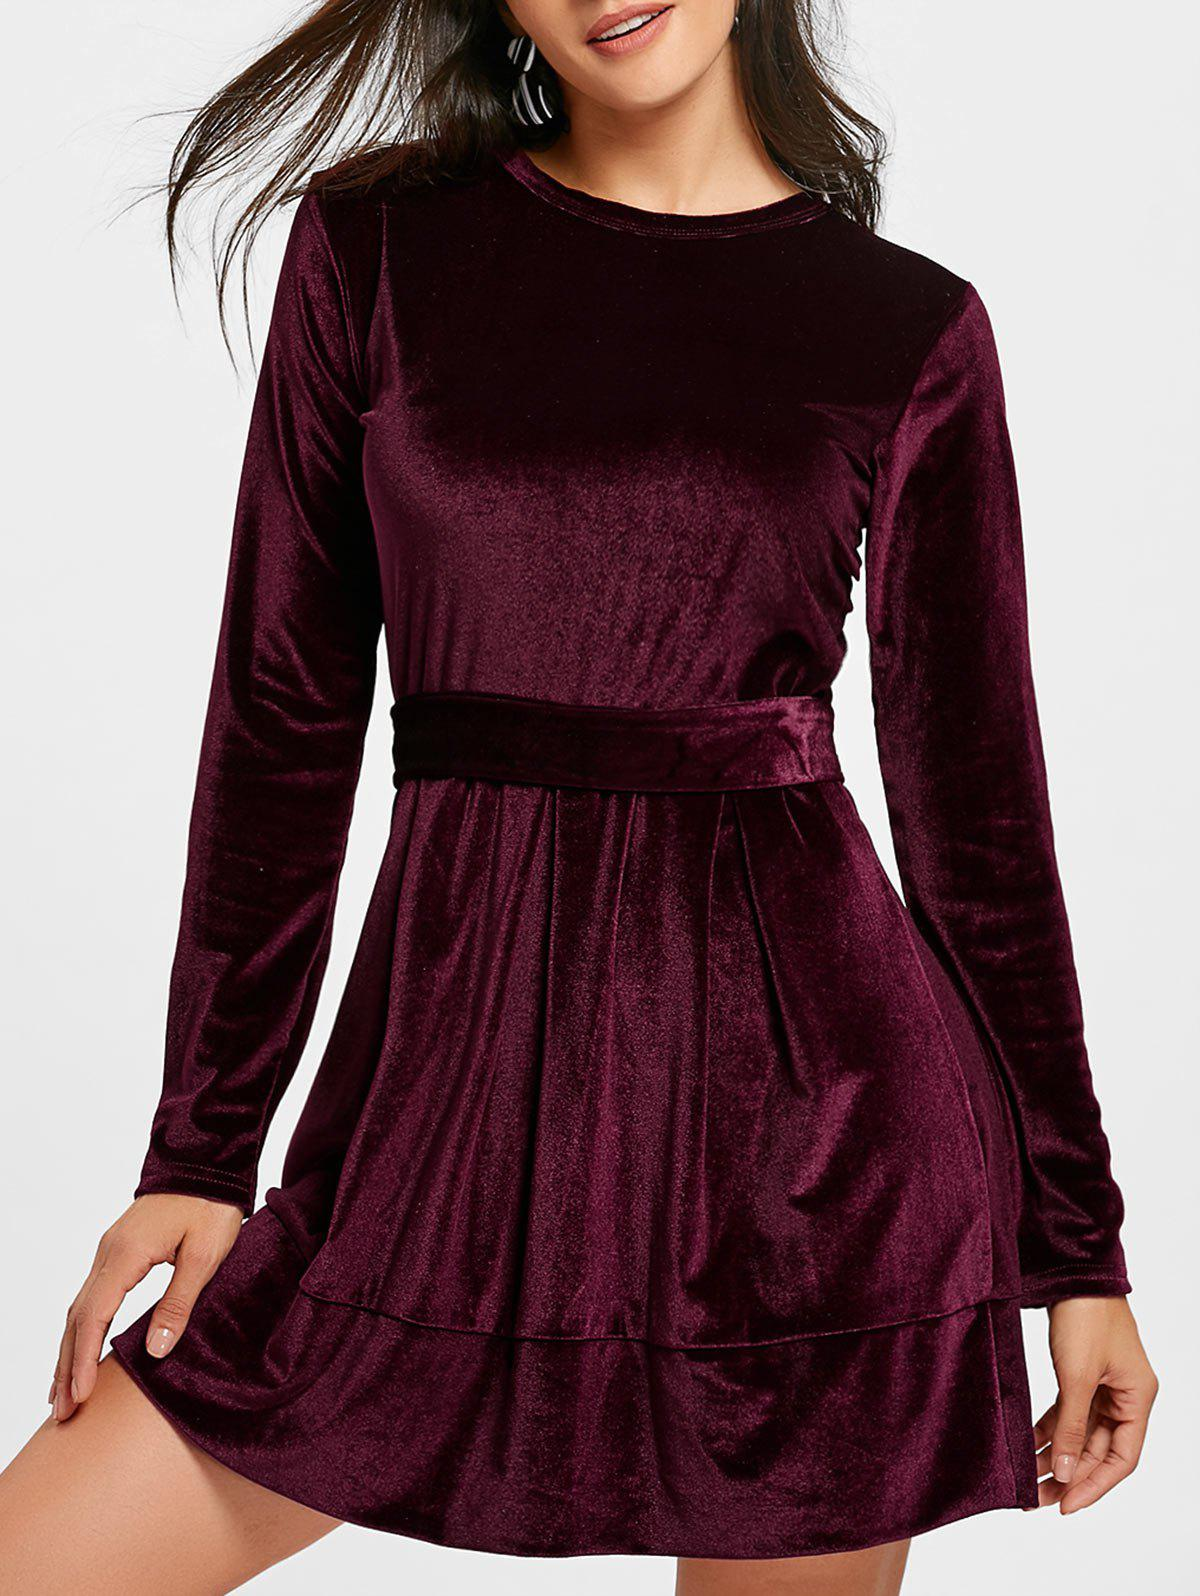 Long Sleeve Velvet Belted Mini Dress - WINE RED L